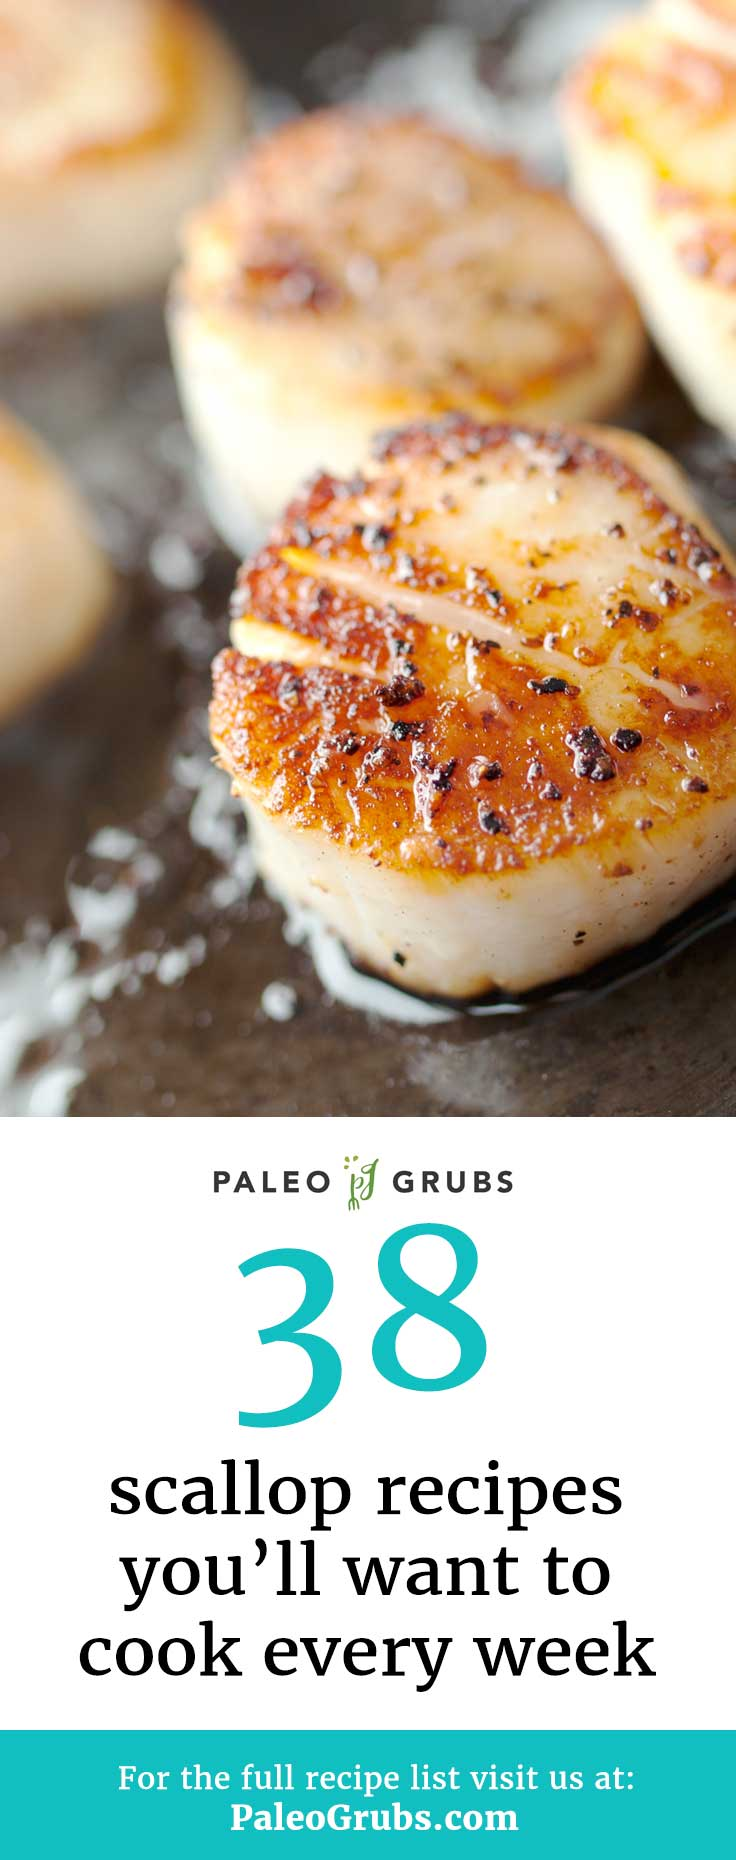 Cooking scallops was a total mystery to me, I usually just ordered them in restaurants. Now I can make a half dozen scallop recipes and I've only scratched the surface.